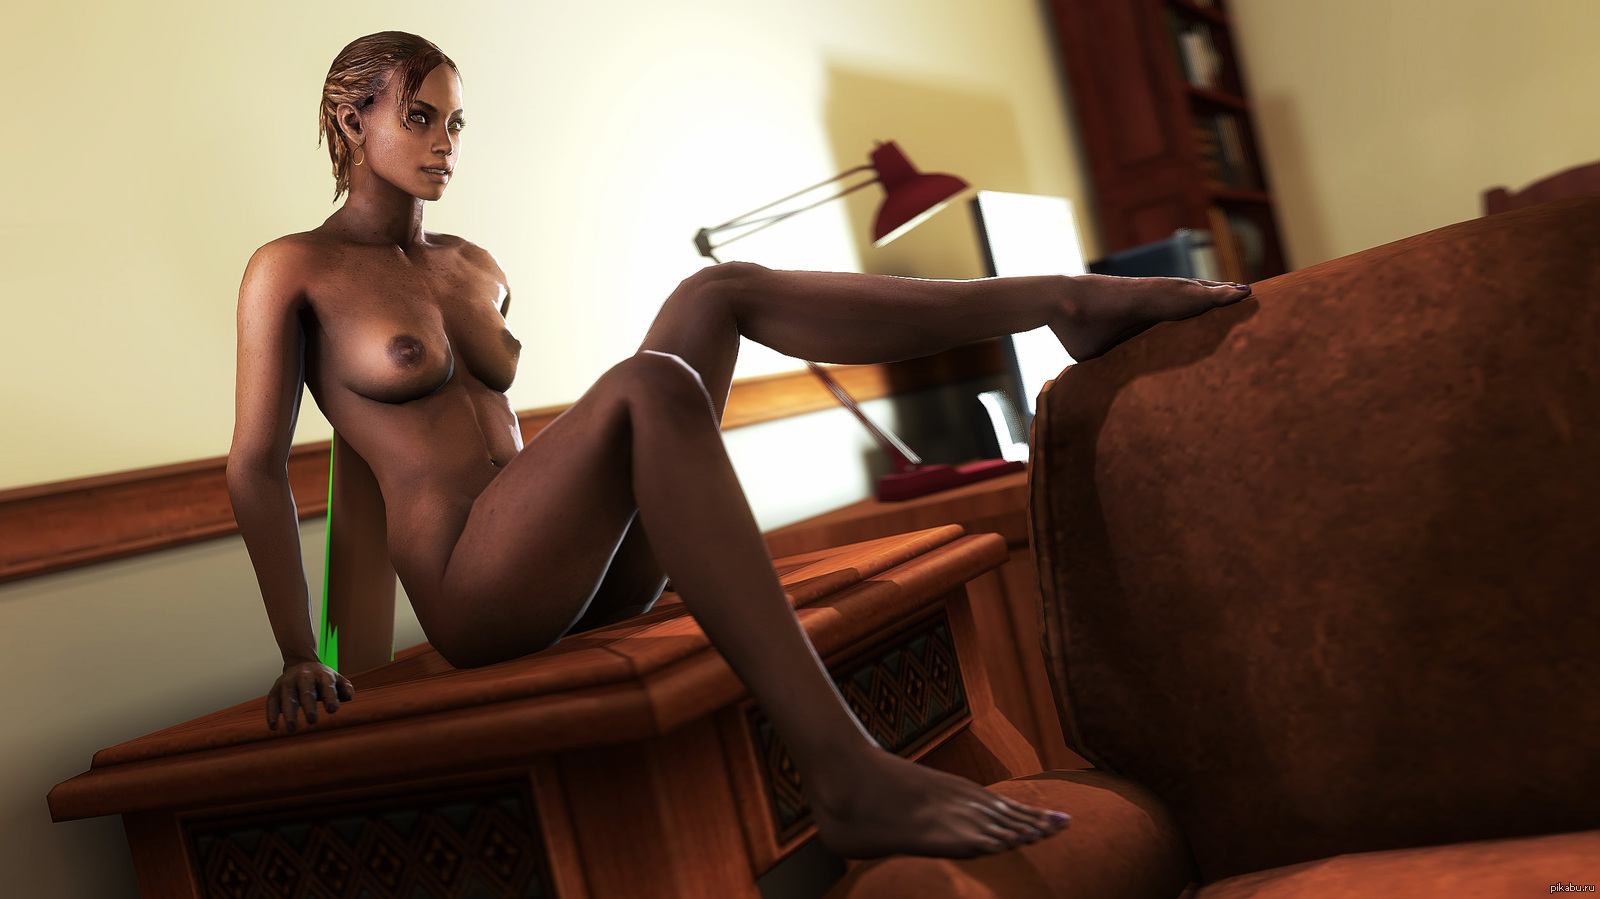 Role-playing tantra mage porn erotic gallery